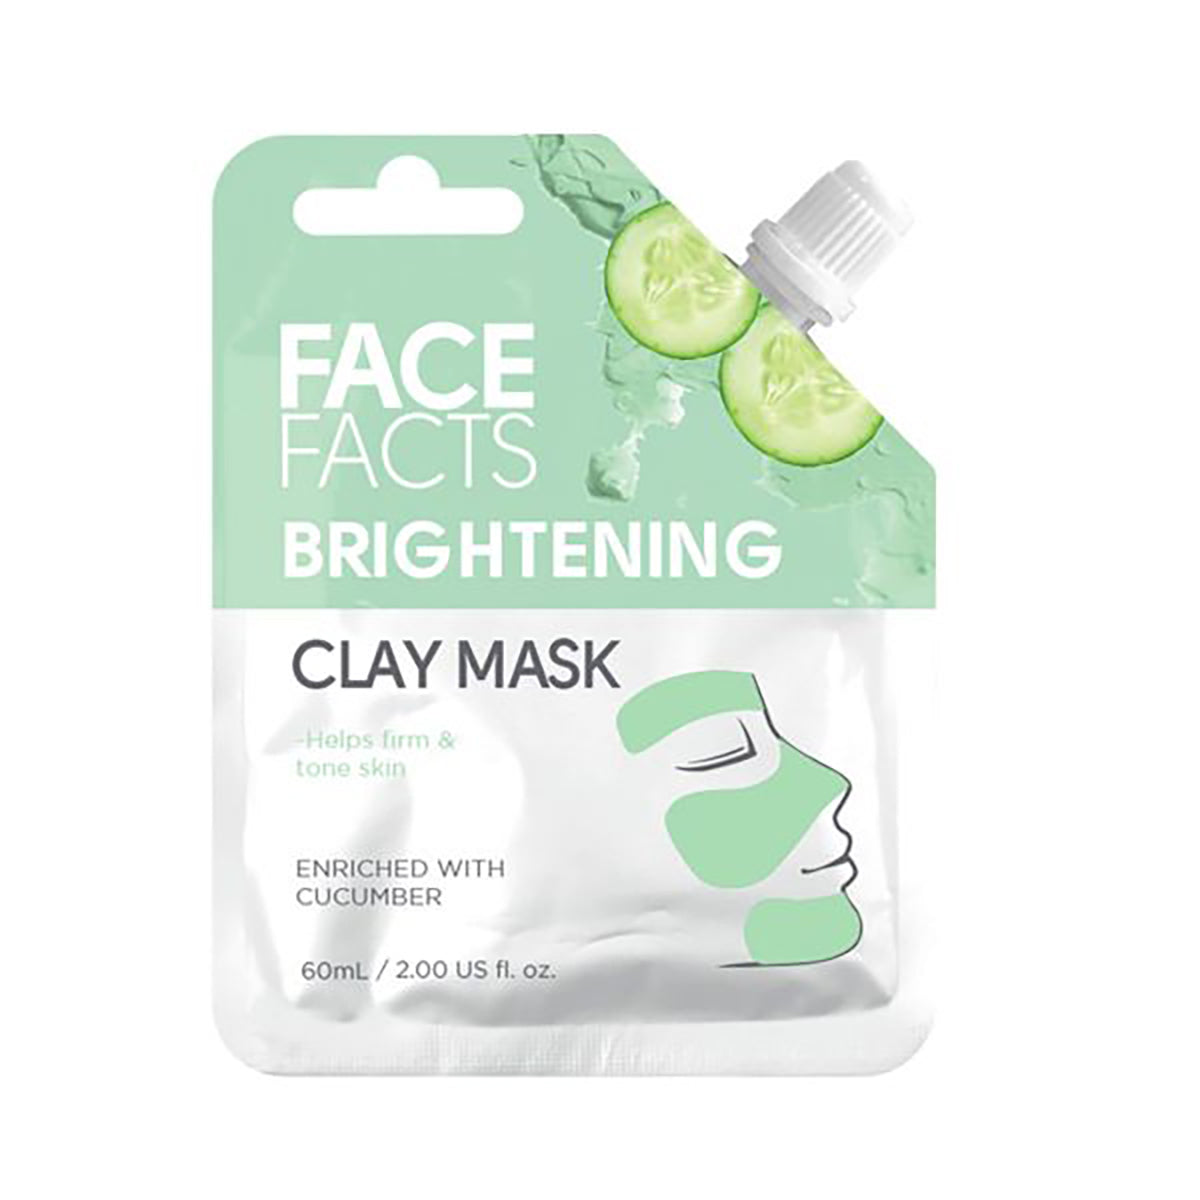 Face Facts Brightening Clay Mud Mask